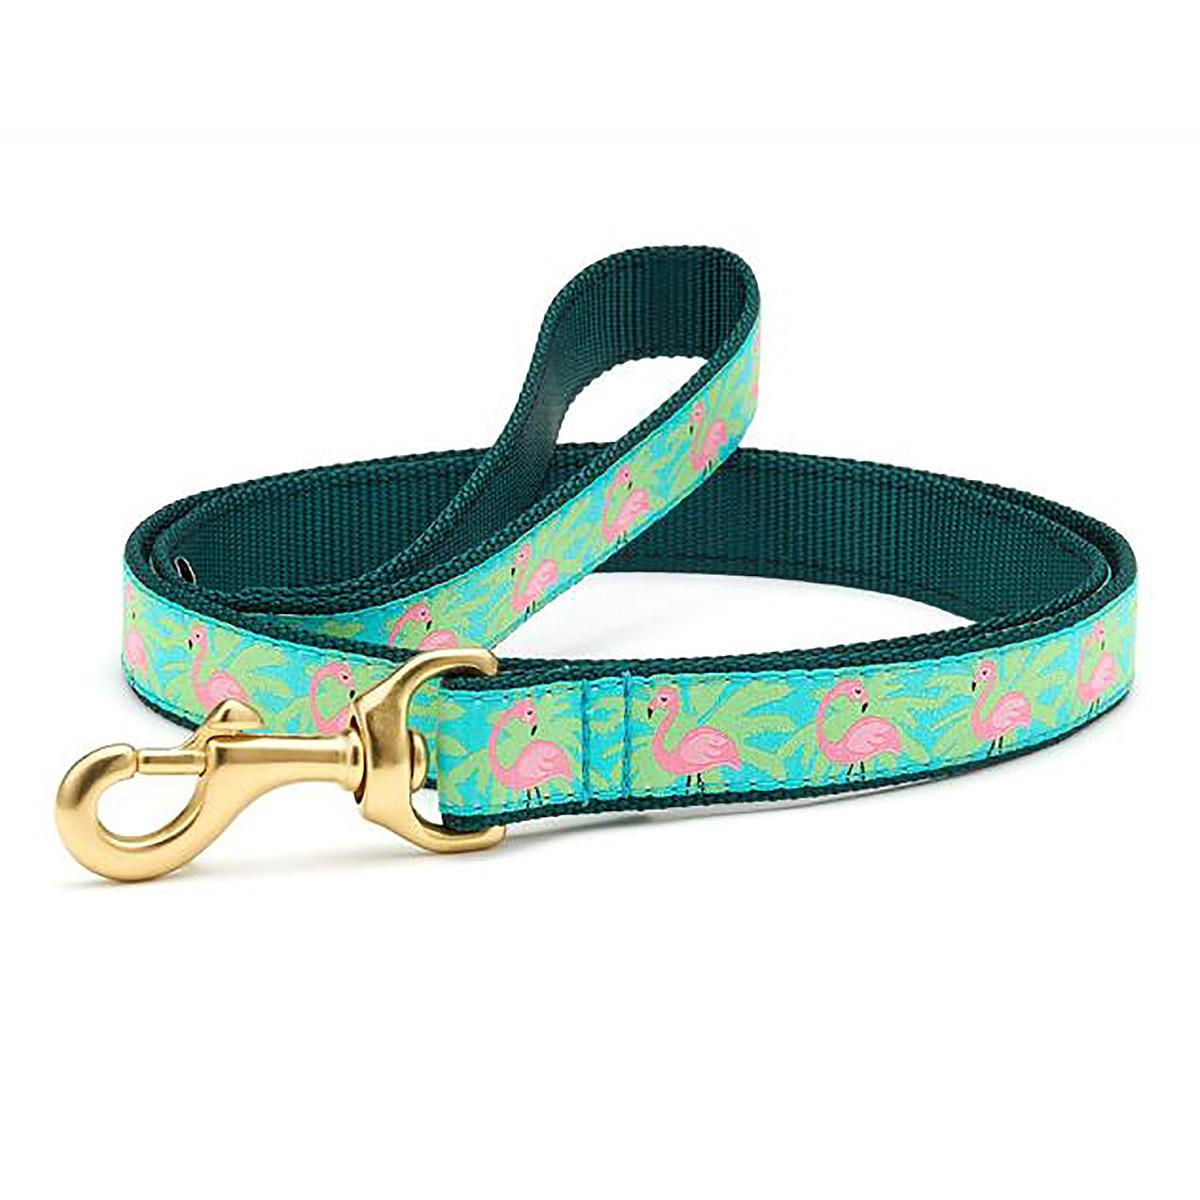 Flamingo Dog Leash by Up Country